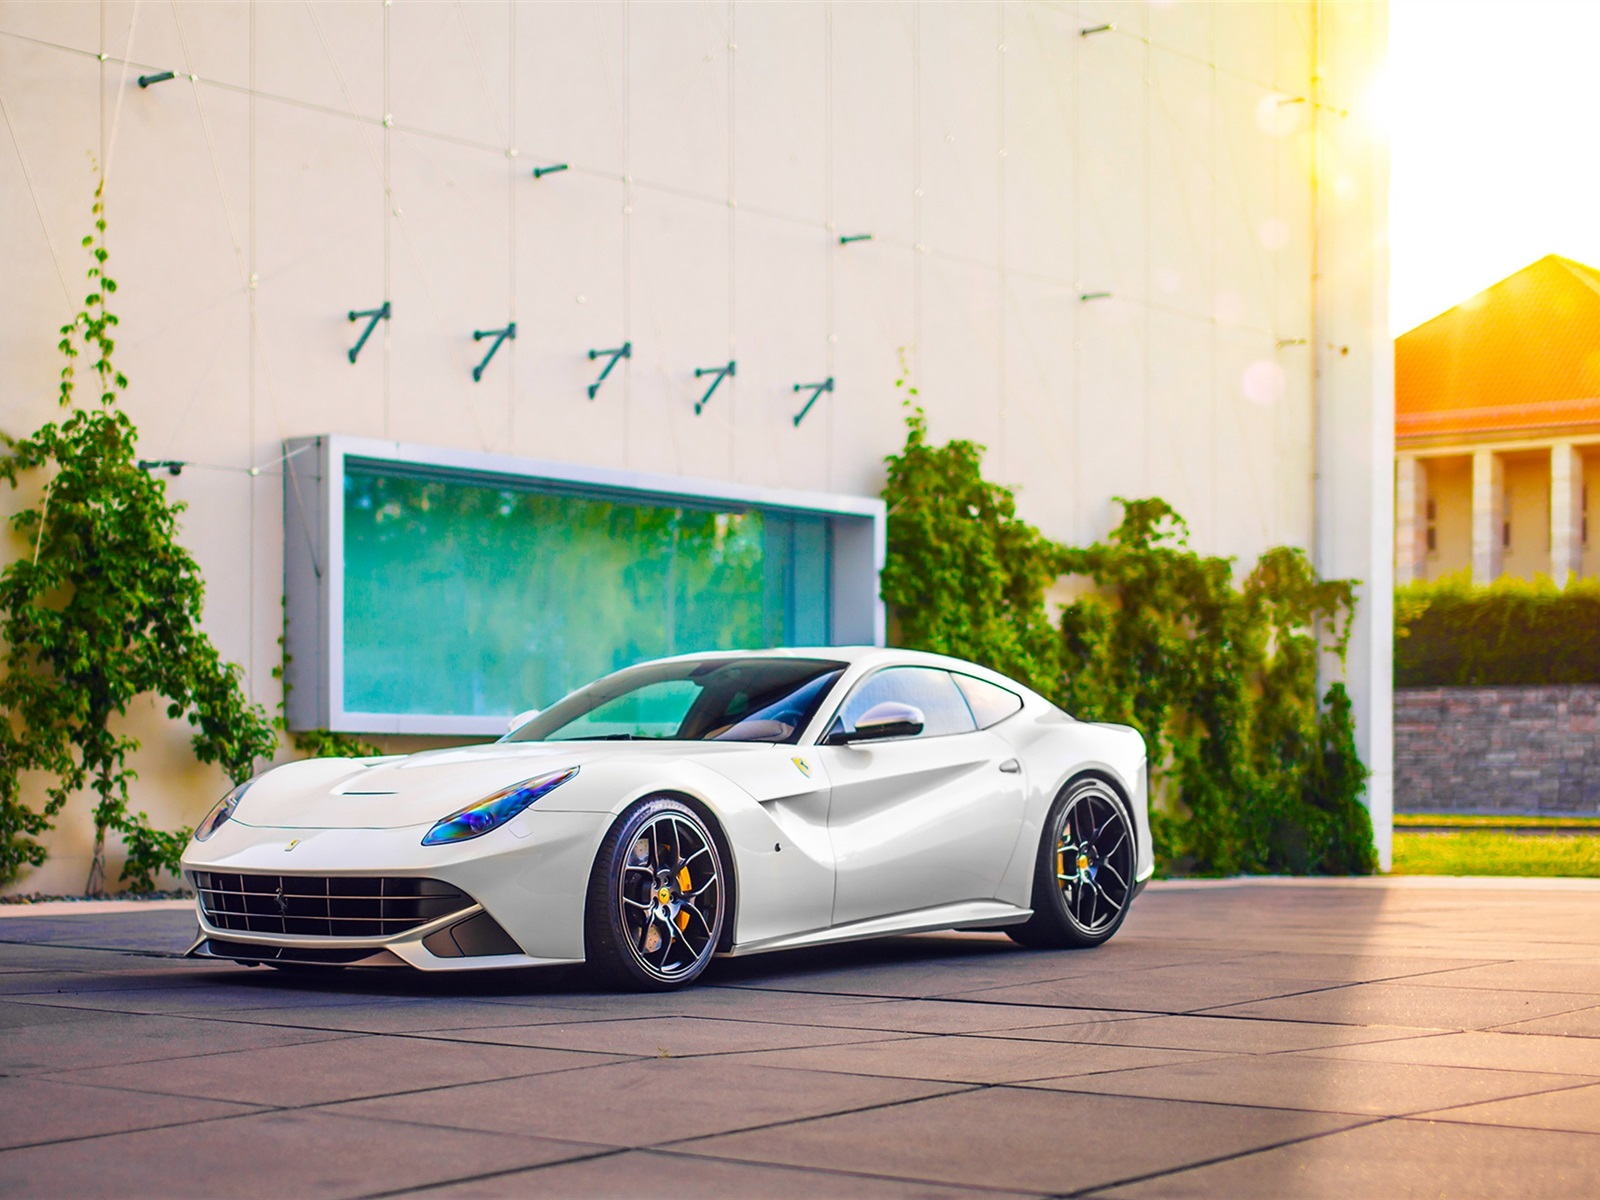 Wallpaper Ferrari F12 Berlinetta White Supercar Side View 1920x1200 Hd Picture Image